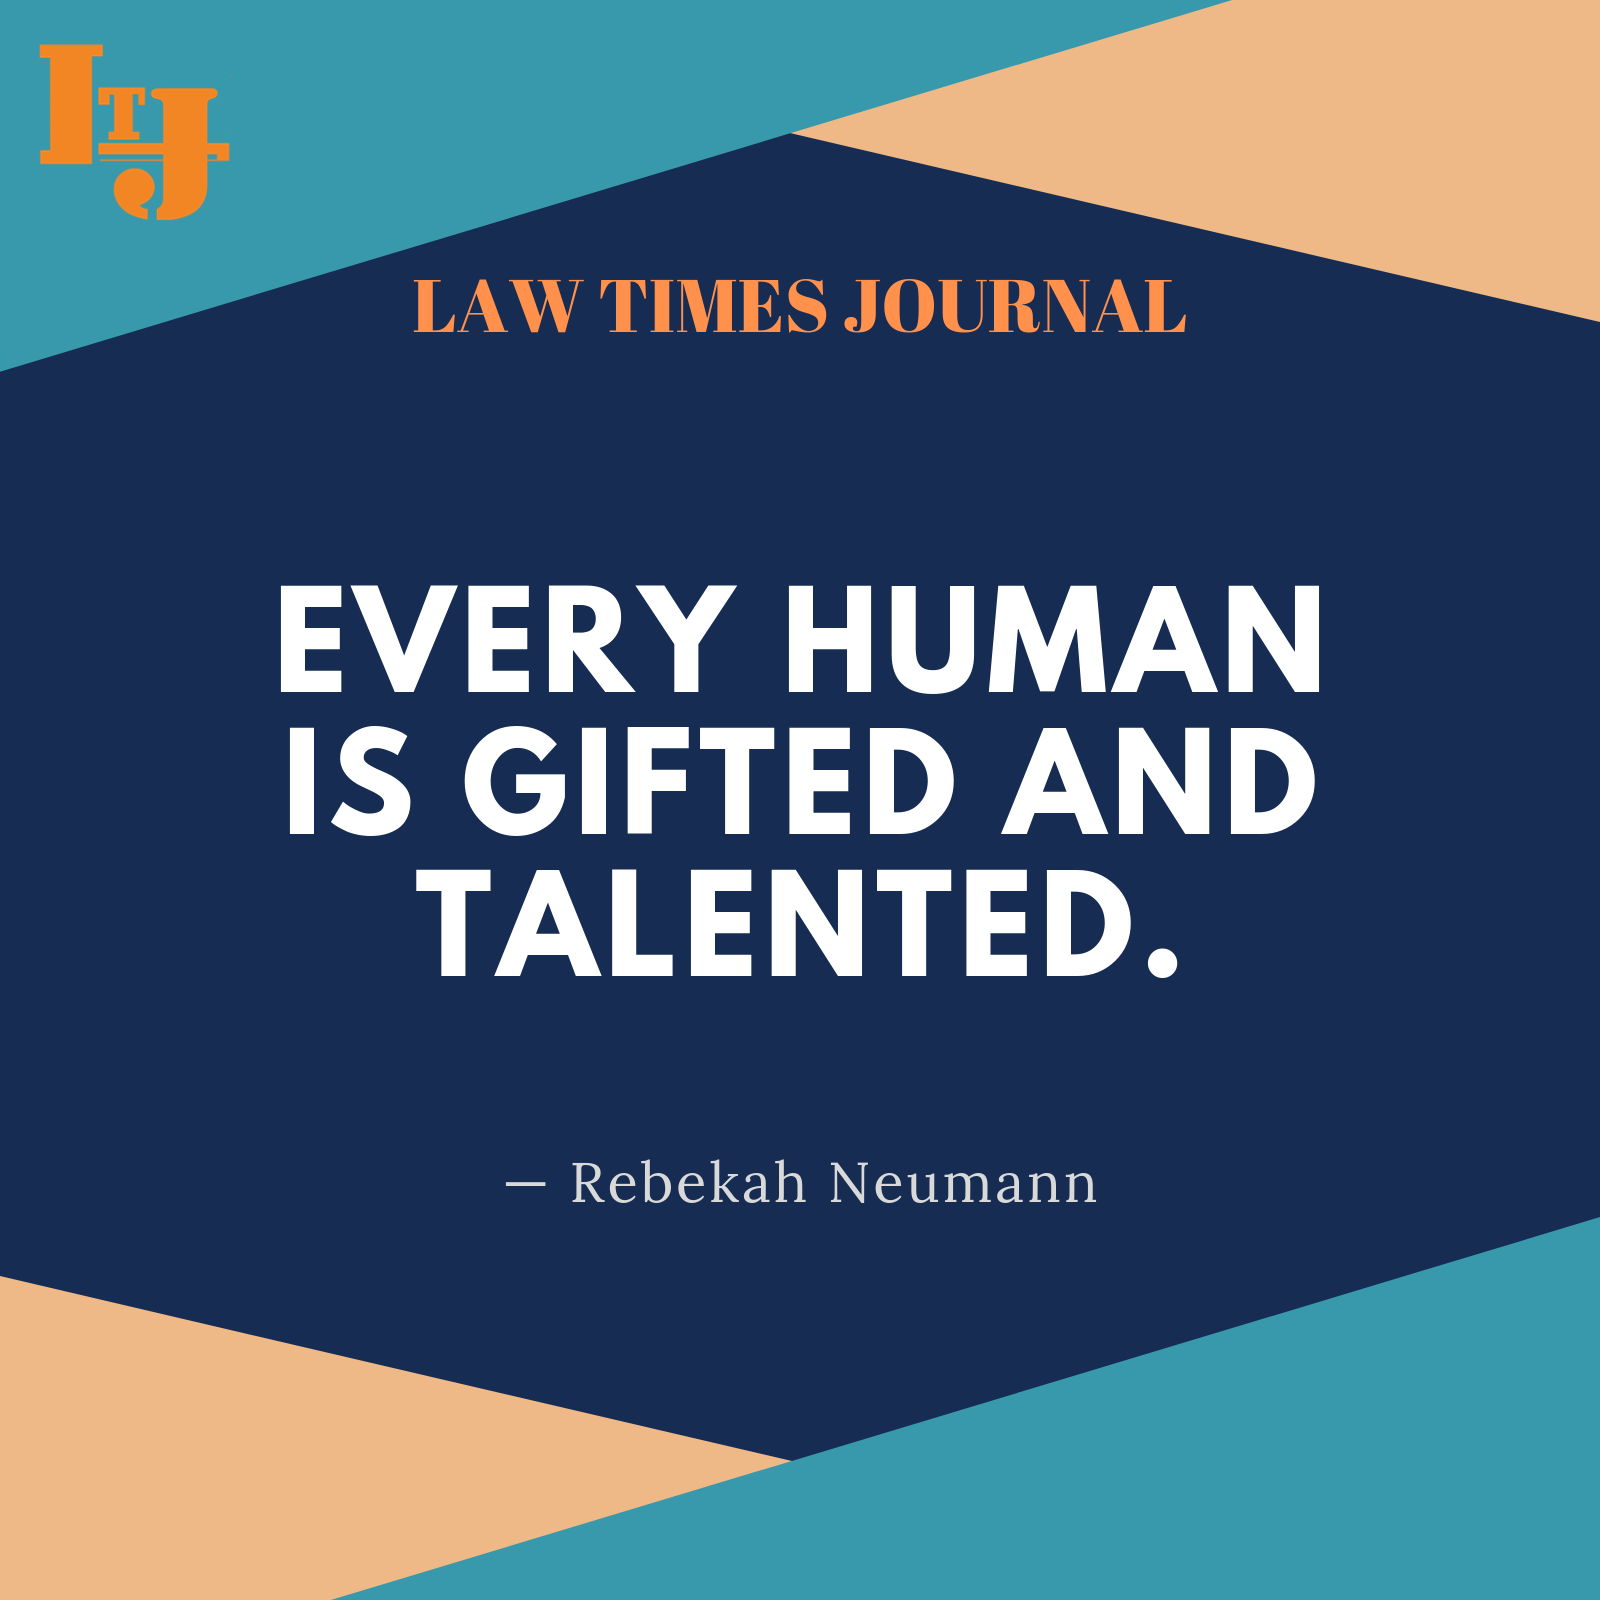 Motivational Quote Law Times Journal Free Law Articles Legal Articles Legal News Case Studies Right To Education Free Education Case Study